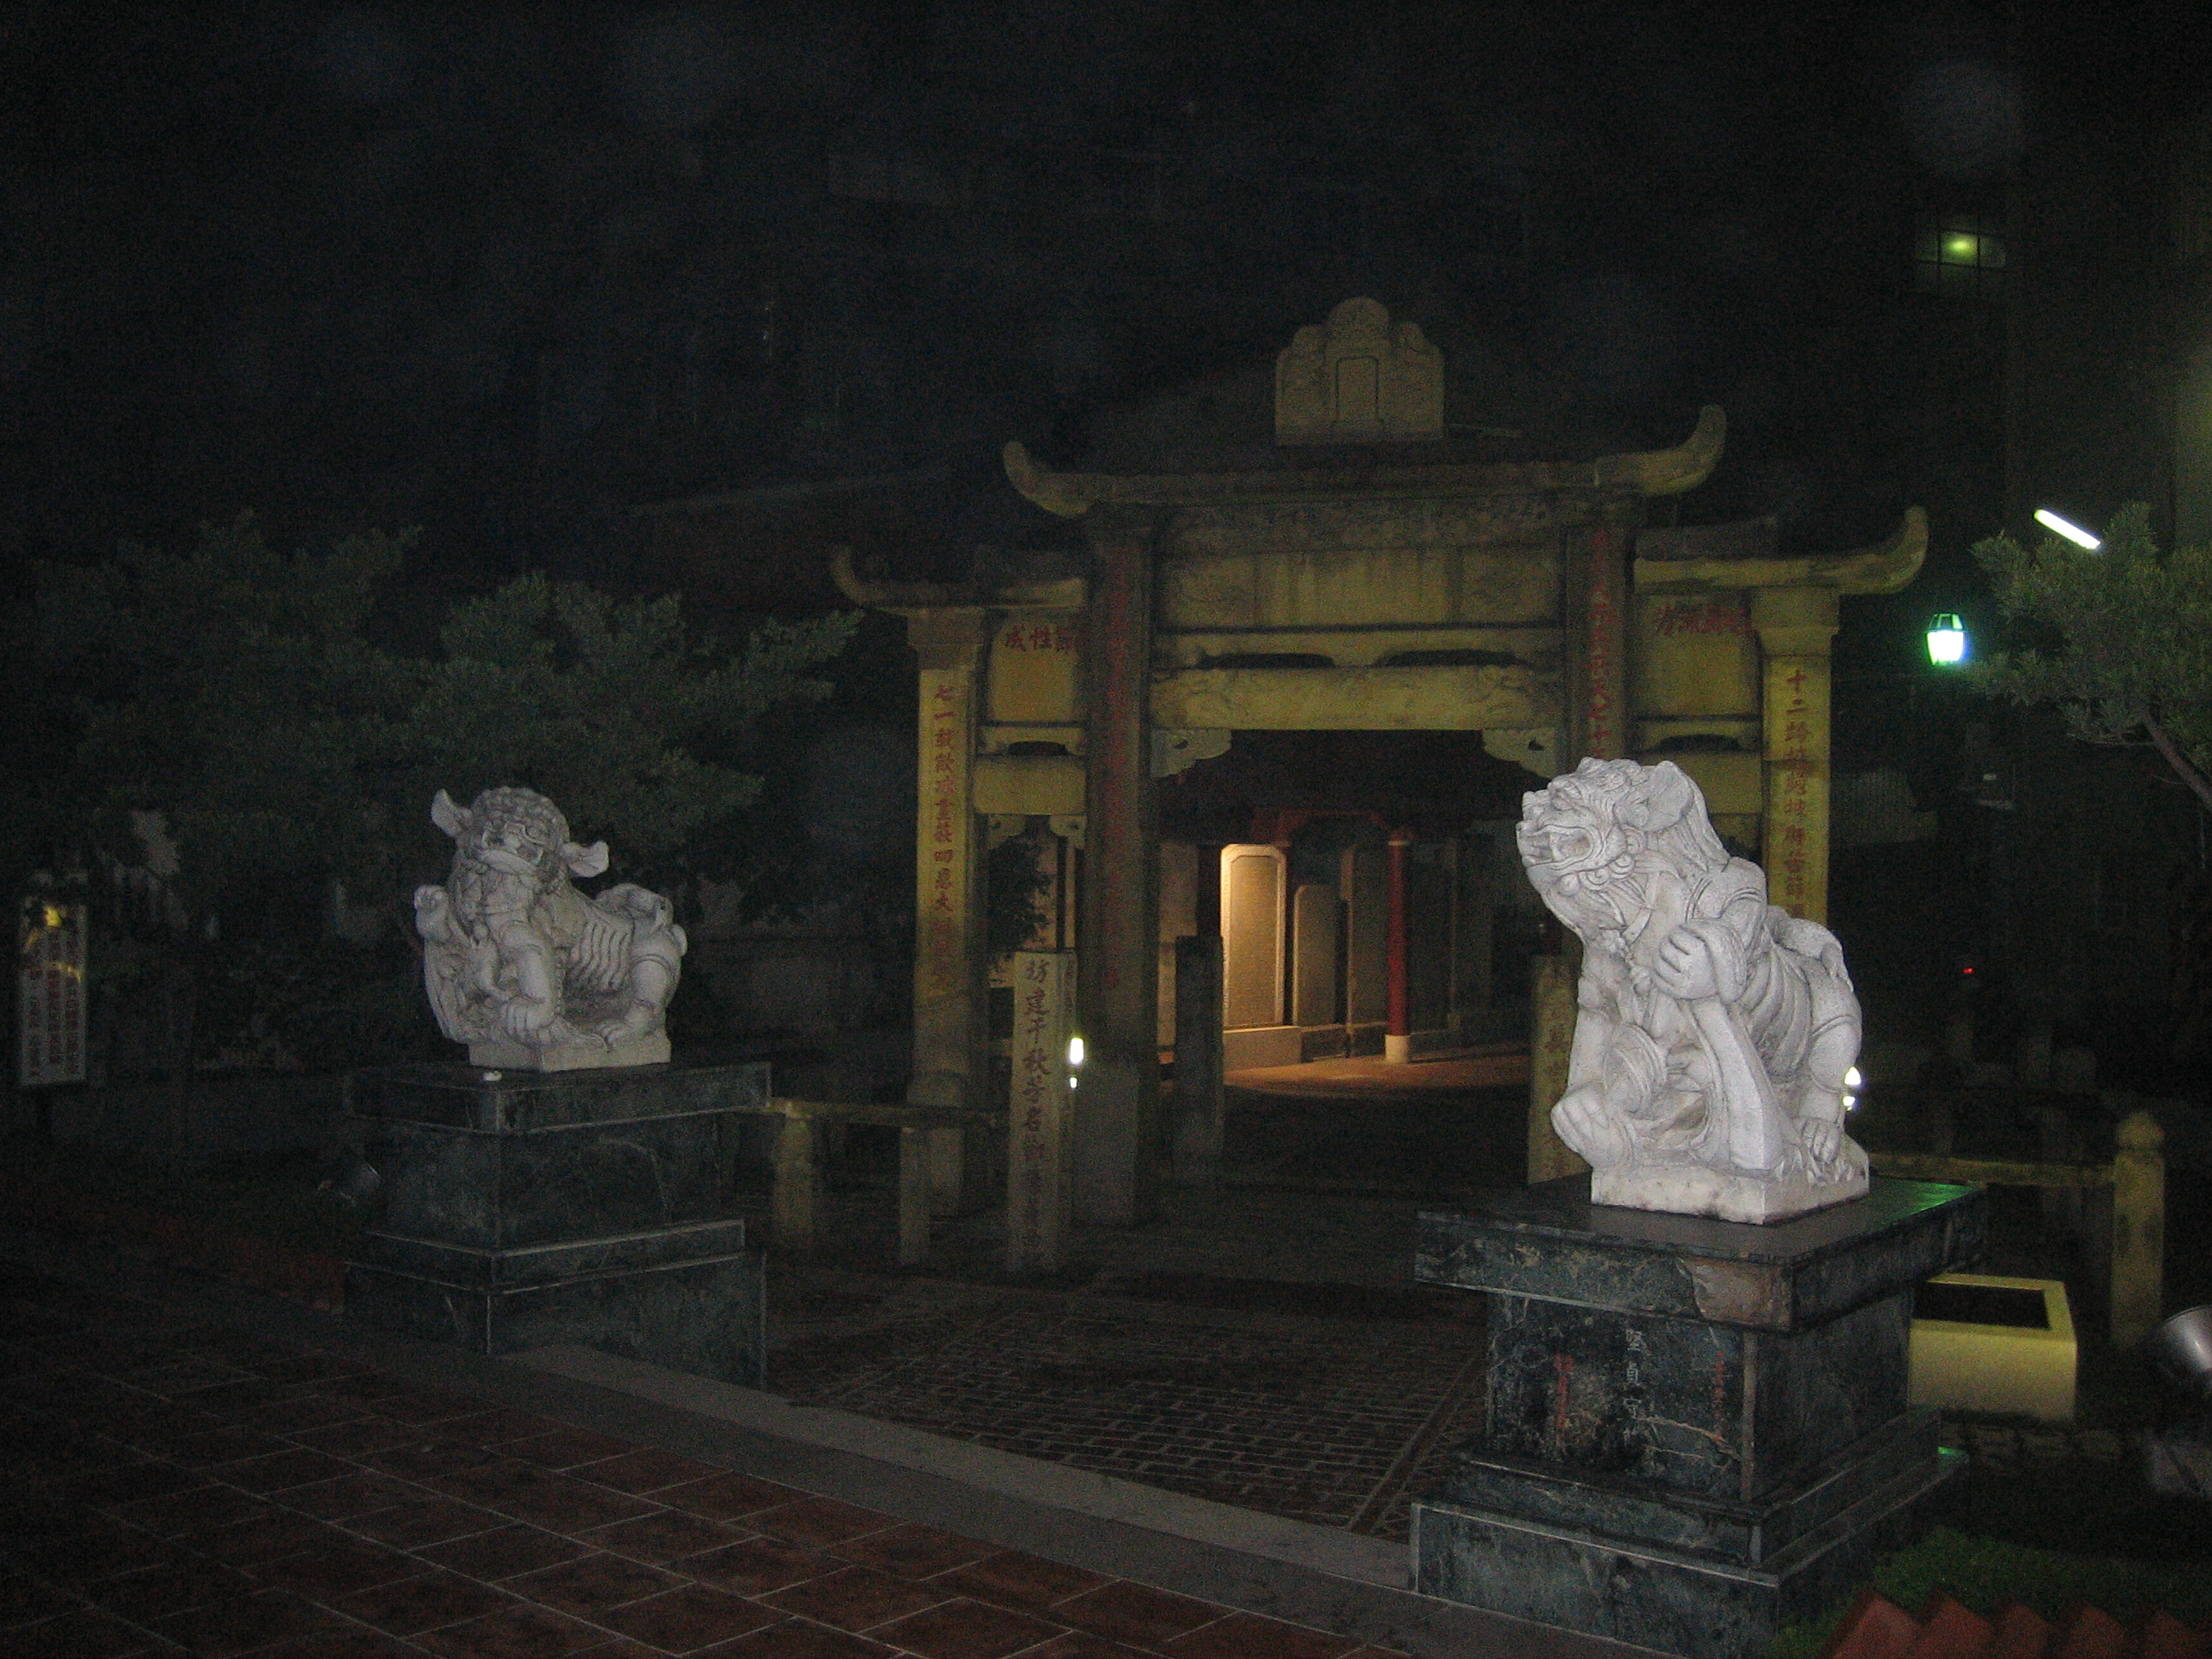 Fishermen's wives shrine in Dajia